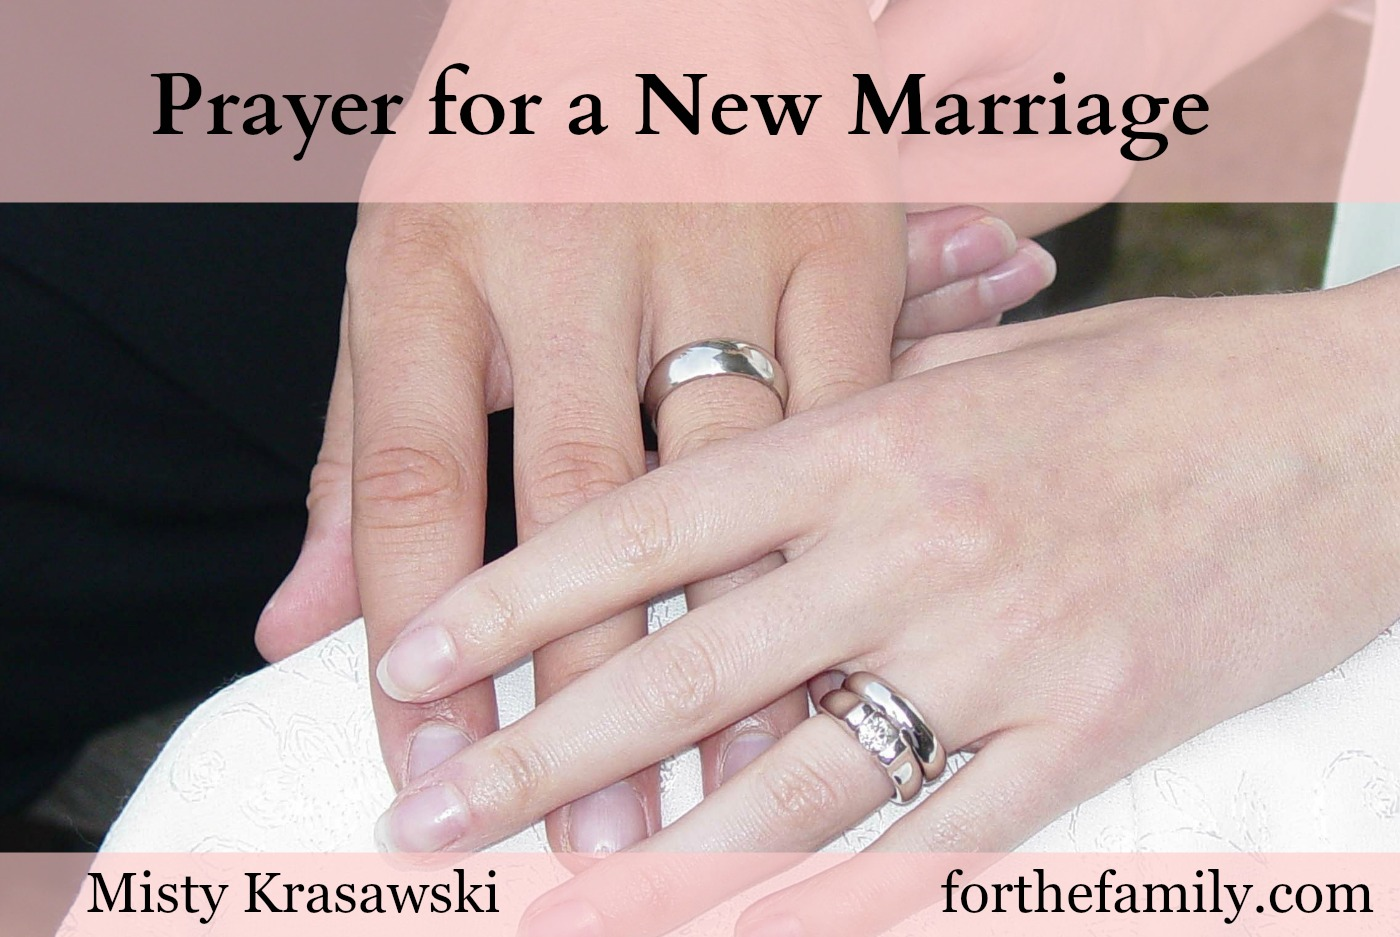 Prayer for a New Marriage - for the family